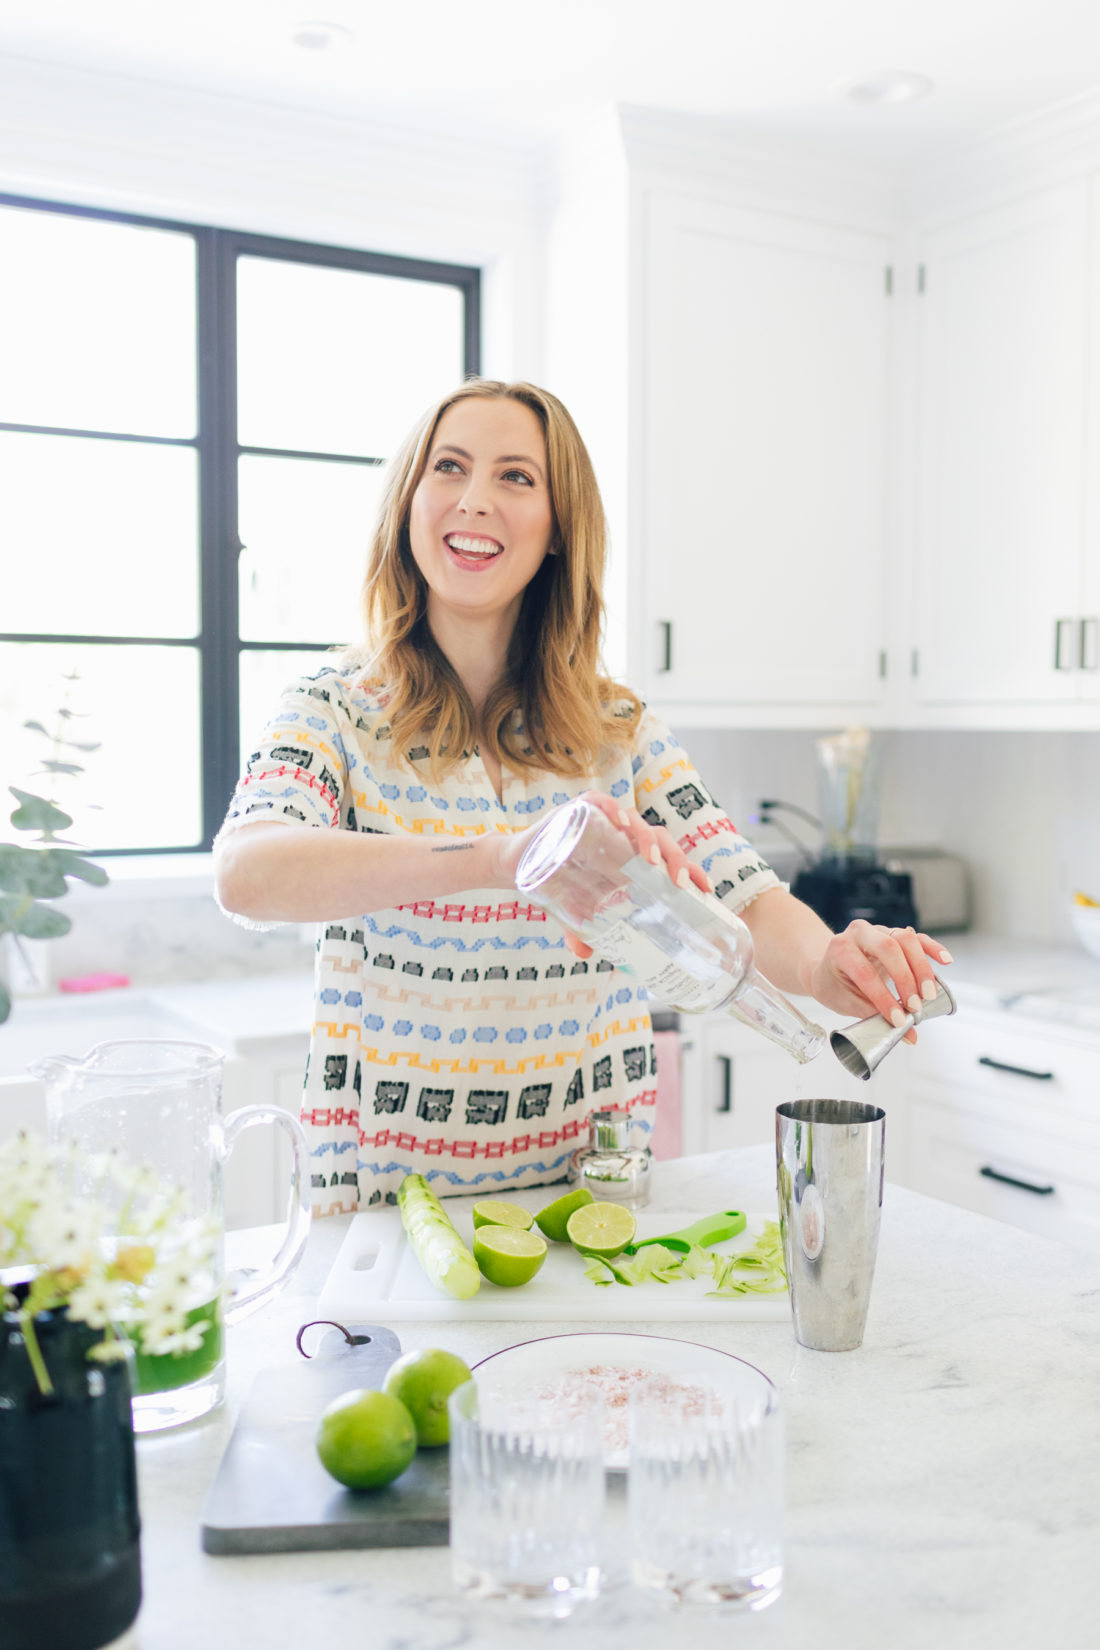 Eva Amurri Martino of Happily Eva After pour tequila into a cocktail shaker for cucumber margaritas